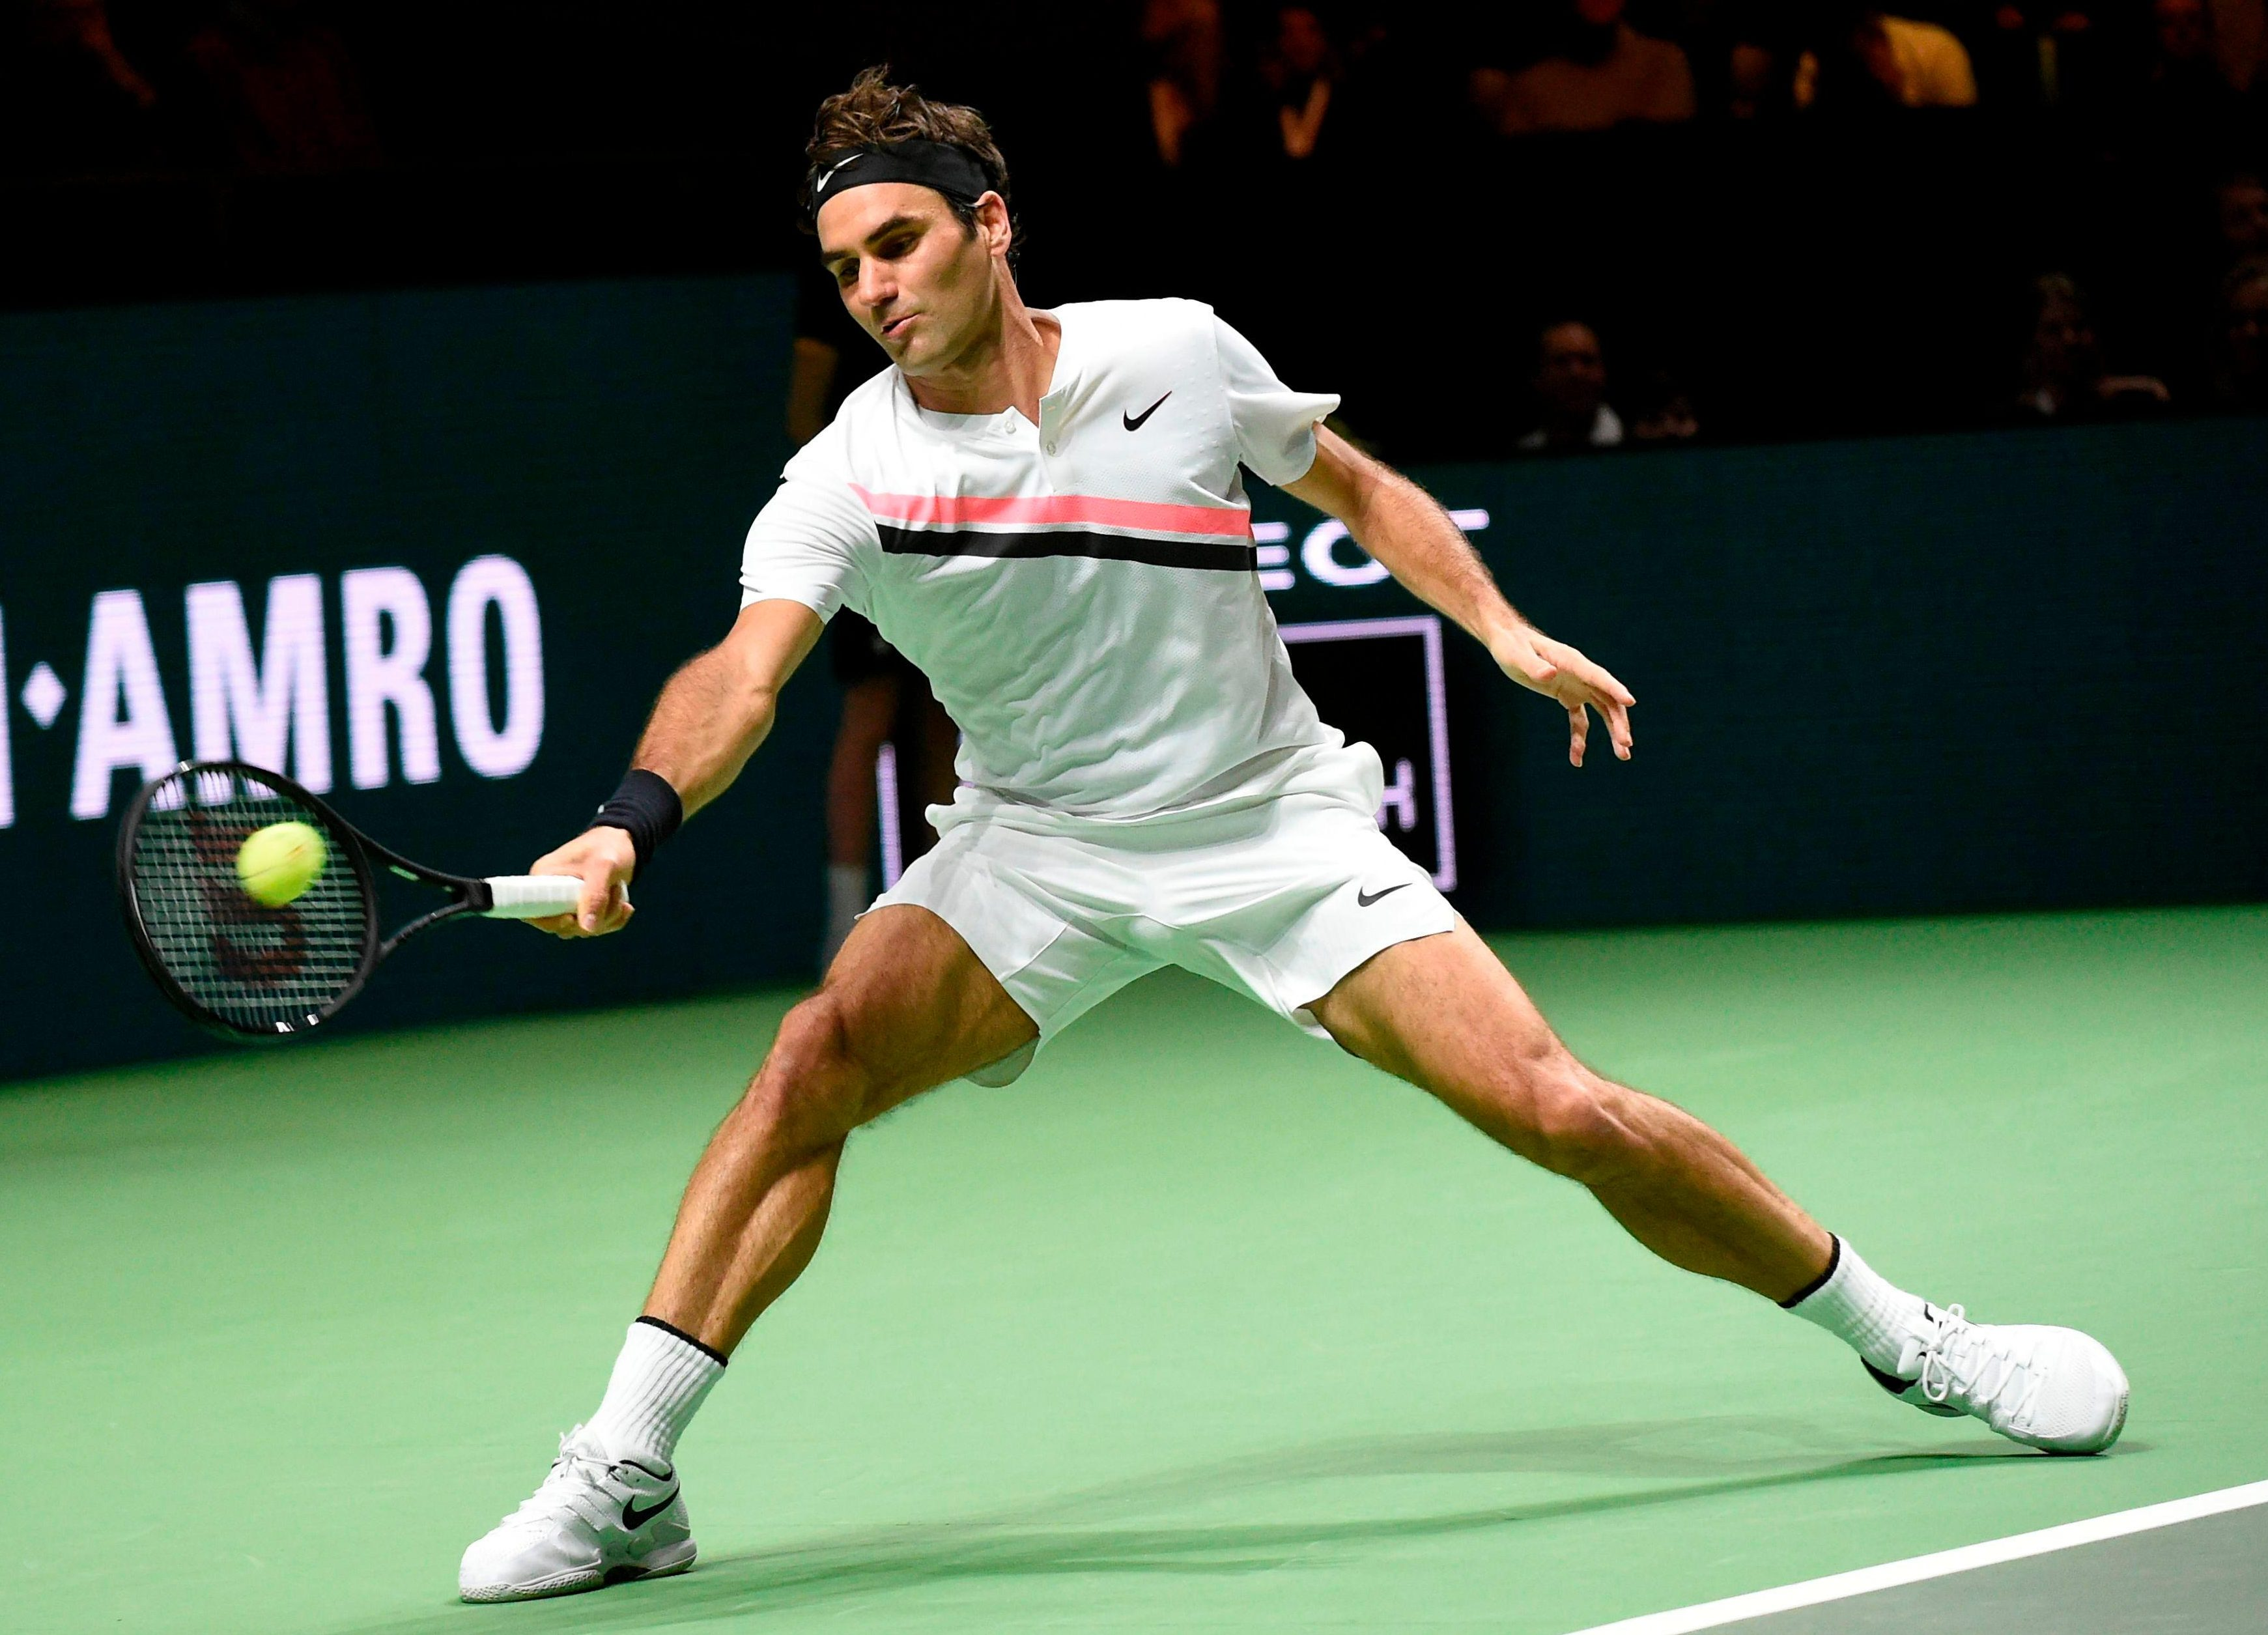 Roger Federer provided another example of why he is the greatest ever